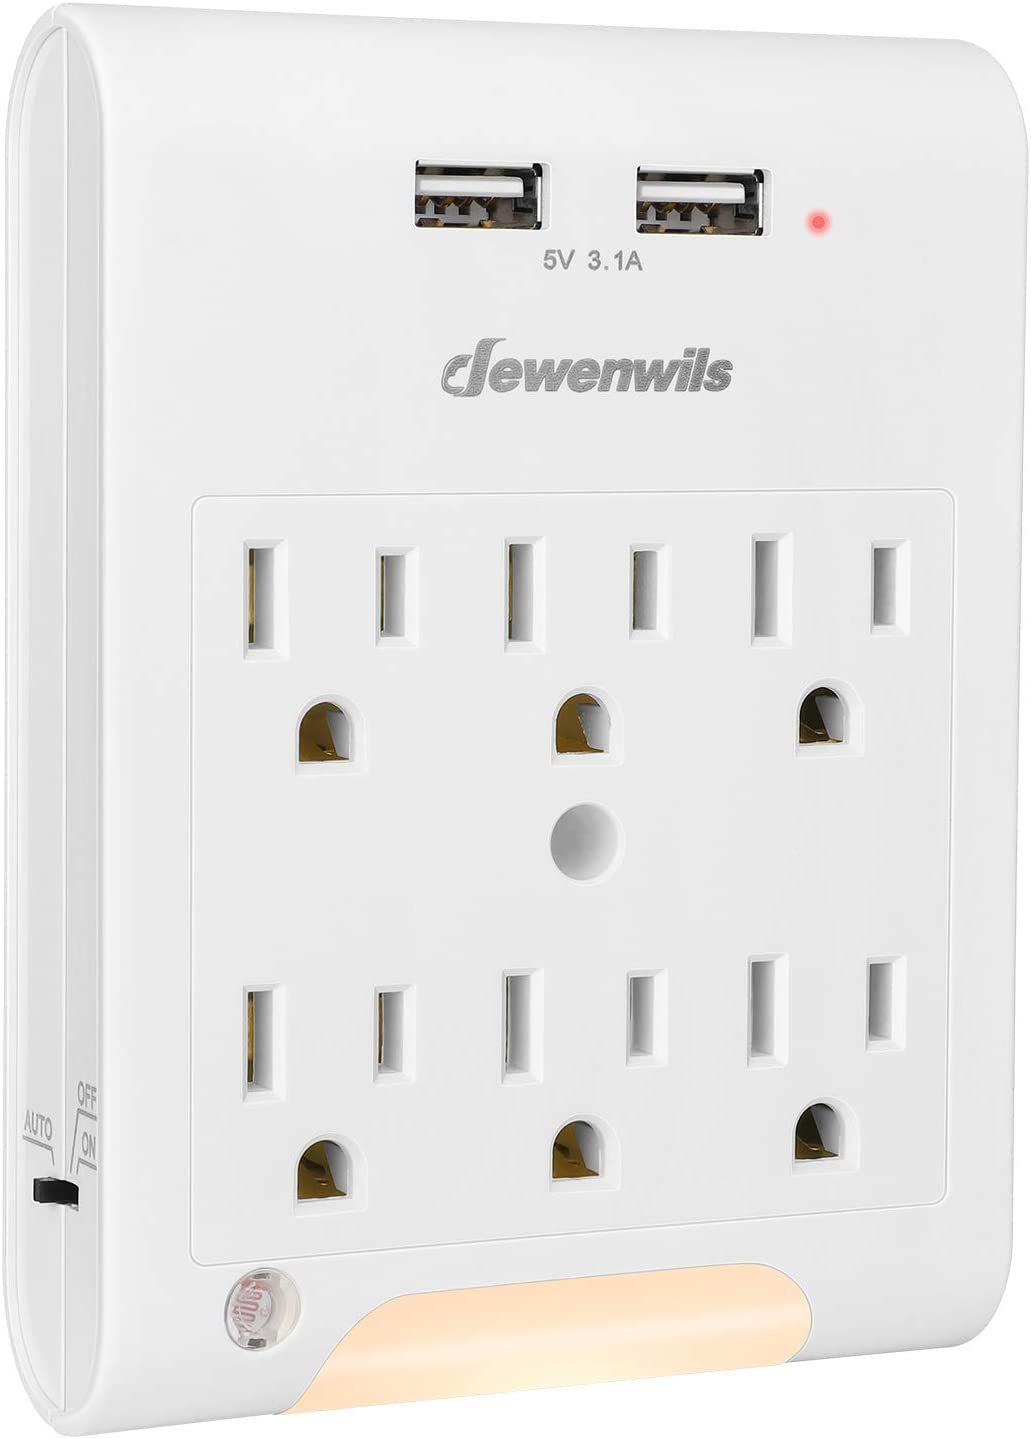 DEWENWILS Multi Outlet Adapter with 2 USB Charging Ports (3.1A total), Light Sensor LED Night Light, 6 Outlets Wall Plug Extender for Travel, Home, 1080Joules Surge Protector, ETL Listed, White